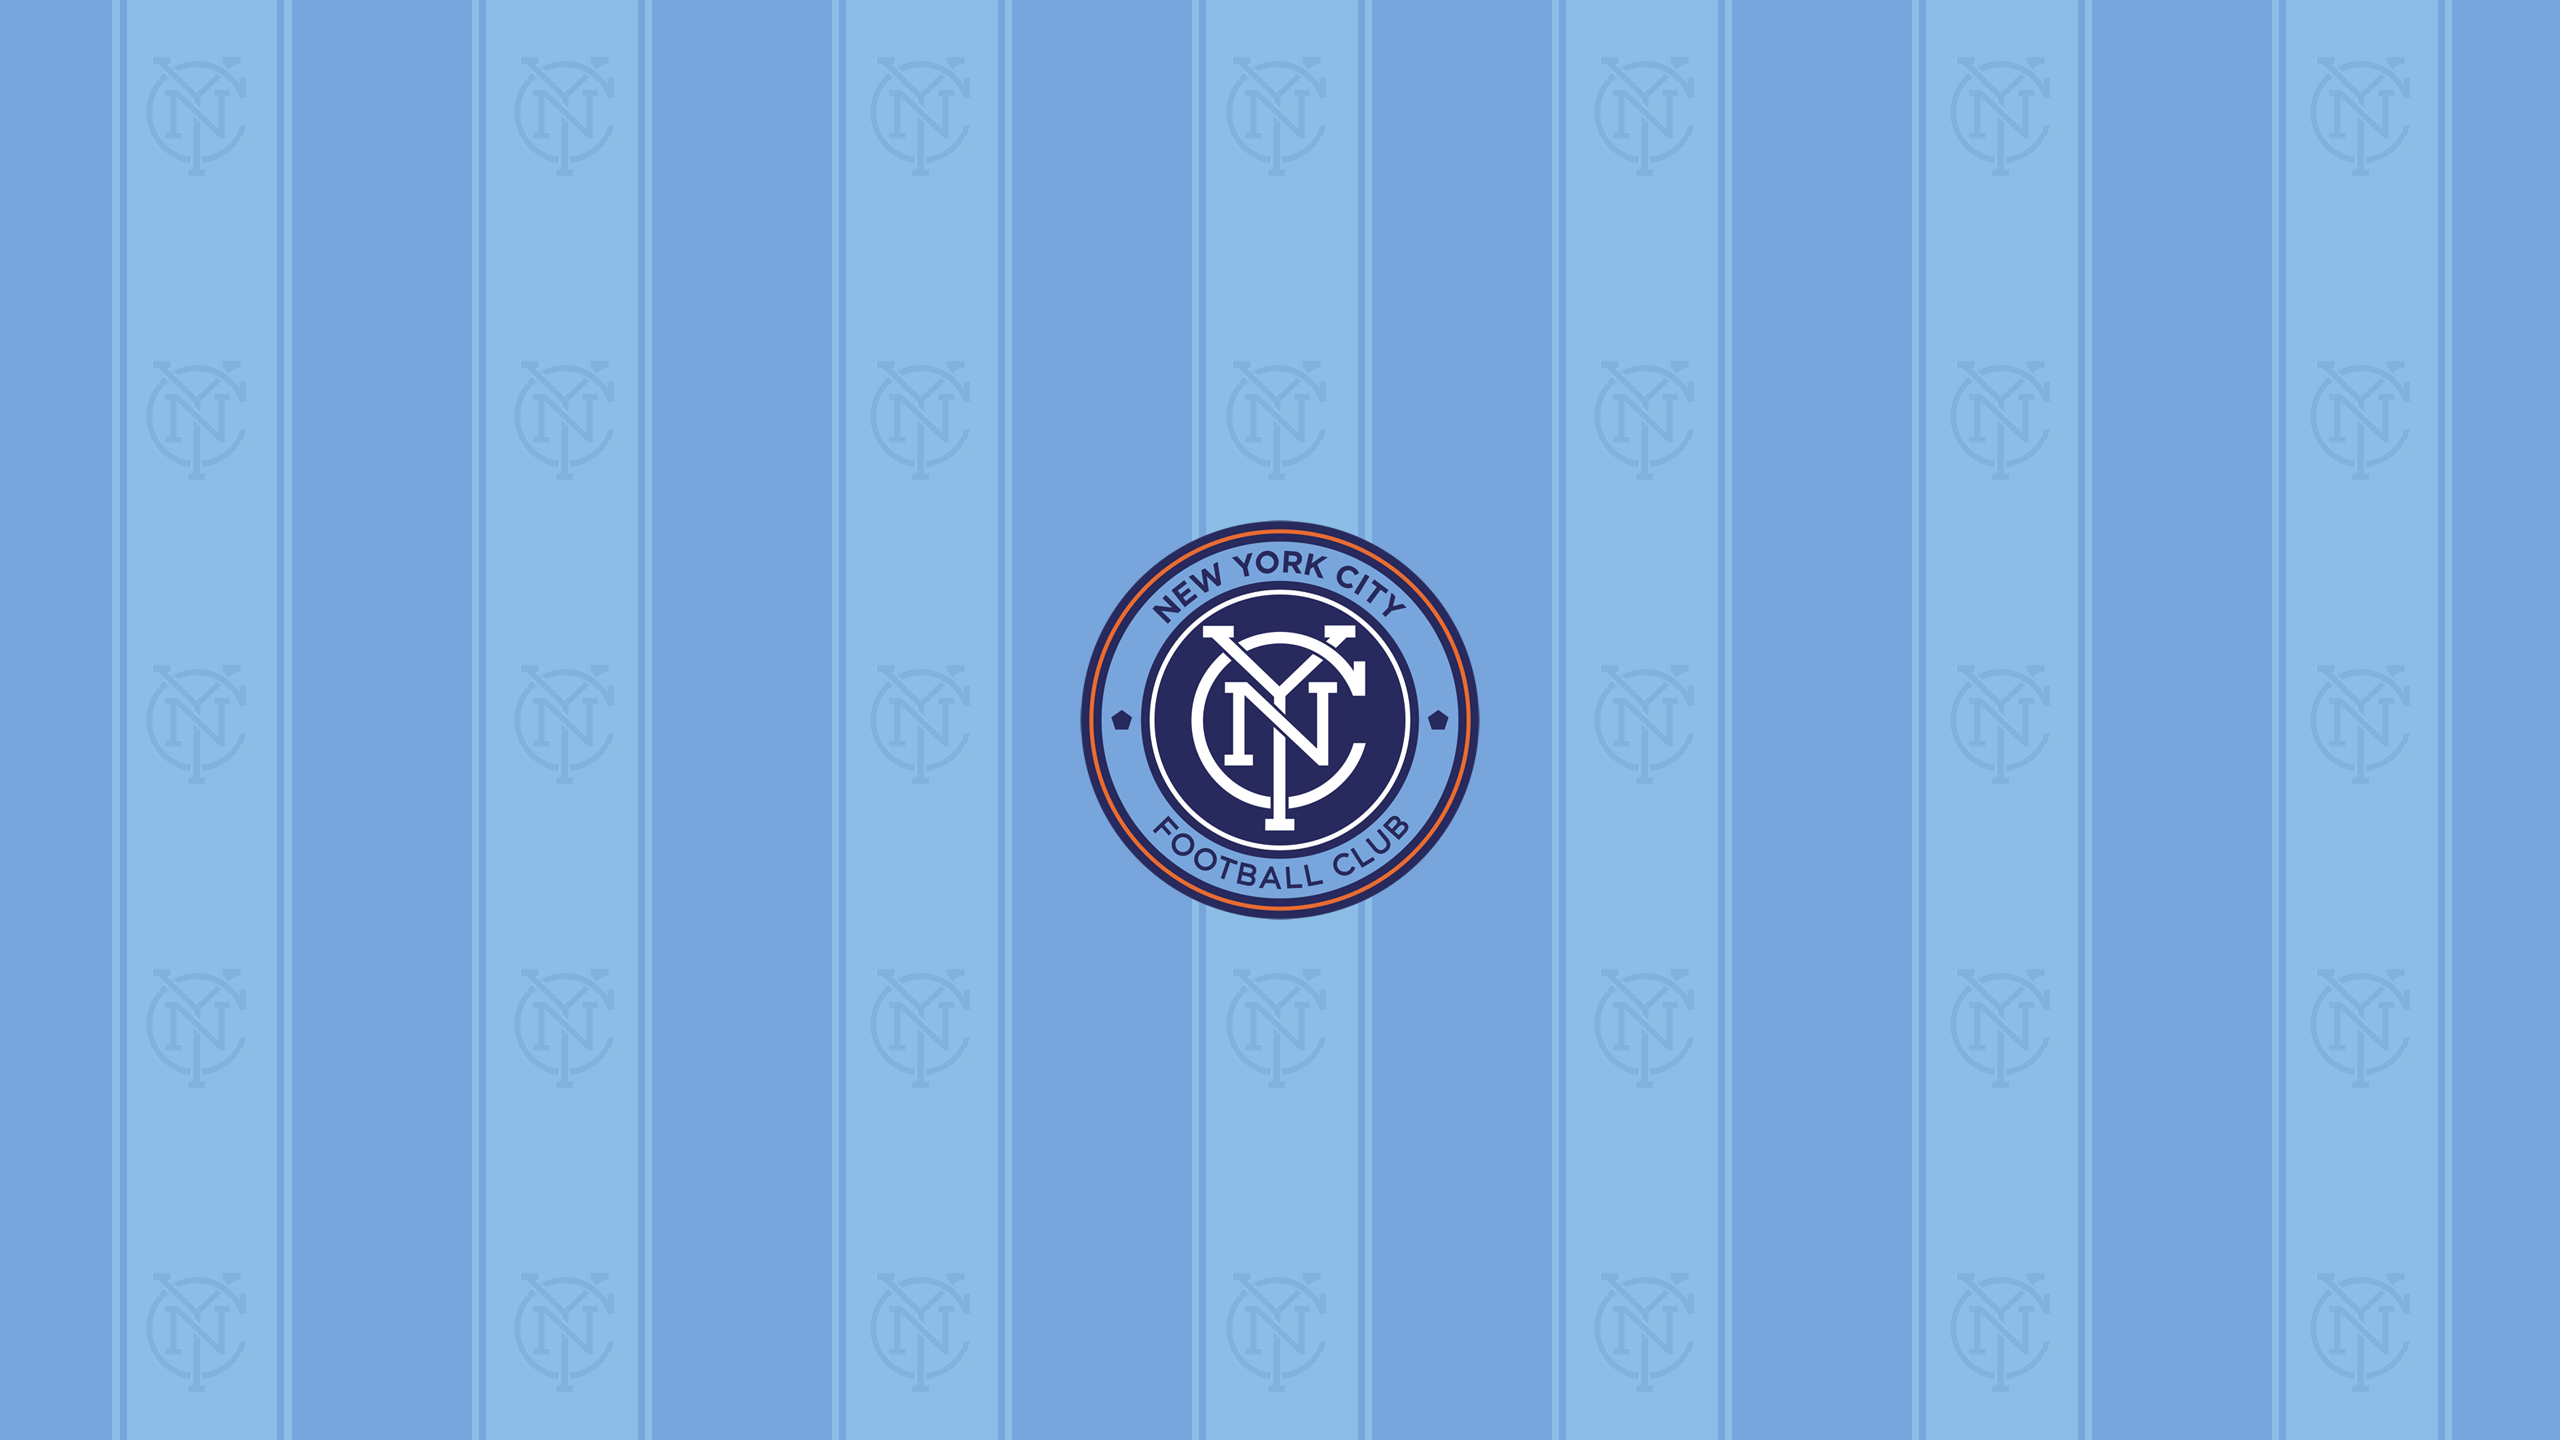 NYC Football Club